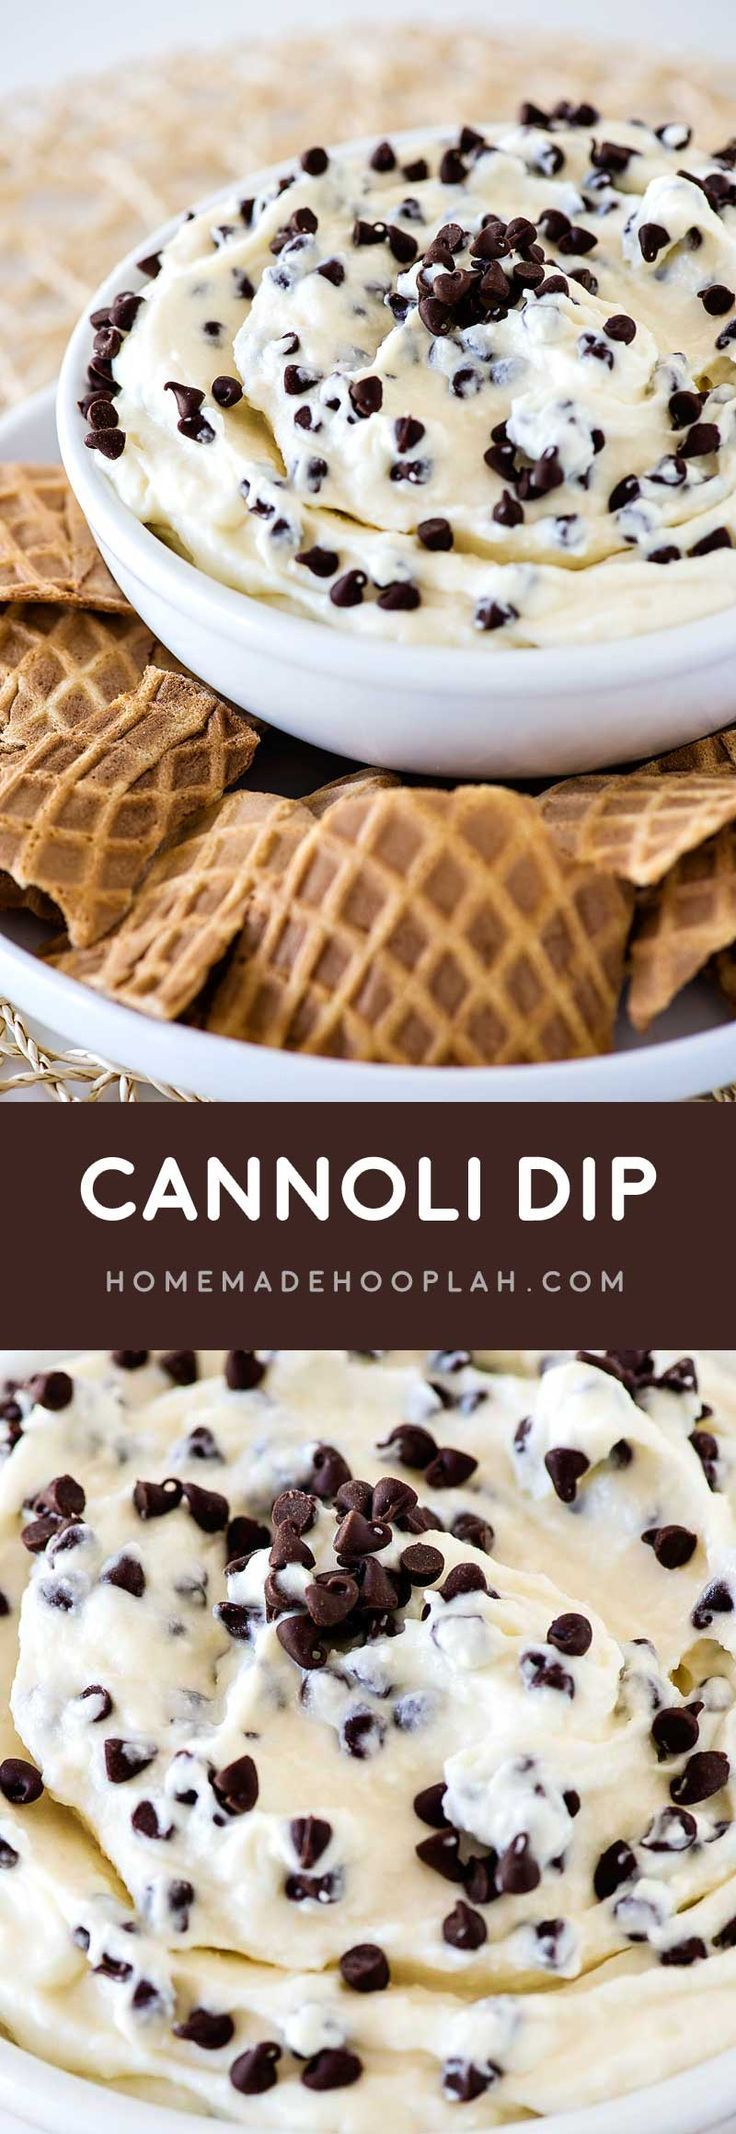 Cannoli Dip! An easy cannoli dip (that doesn't taste like cream cheese!) mixed with delicious mini chocolate chips and served with broken waffle cones for dipping.